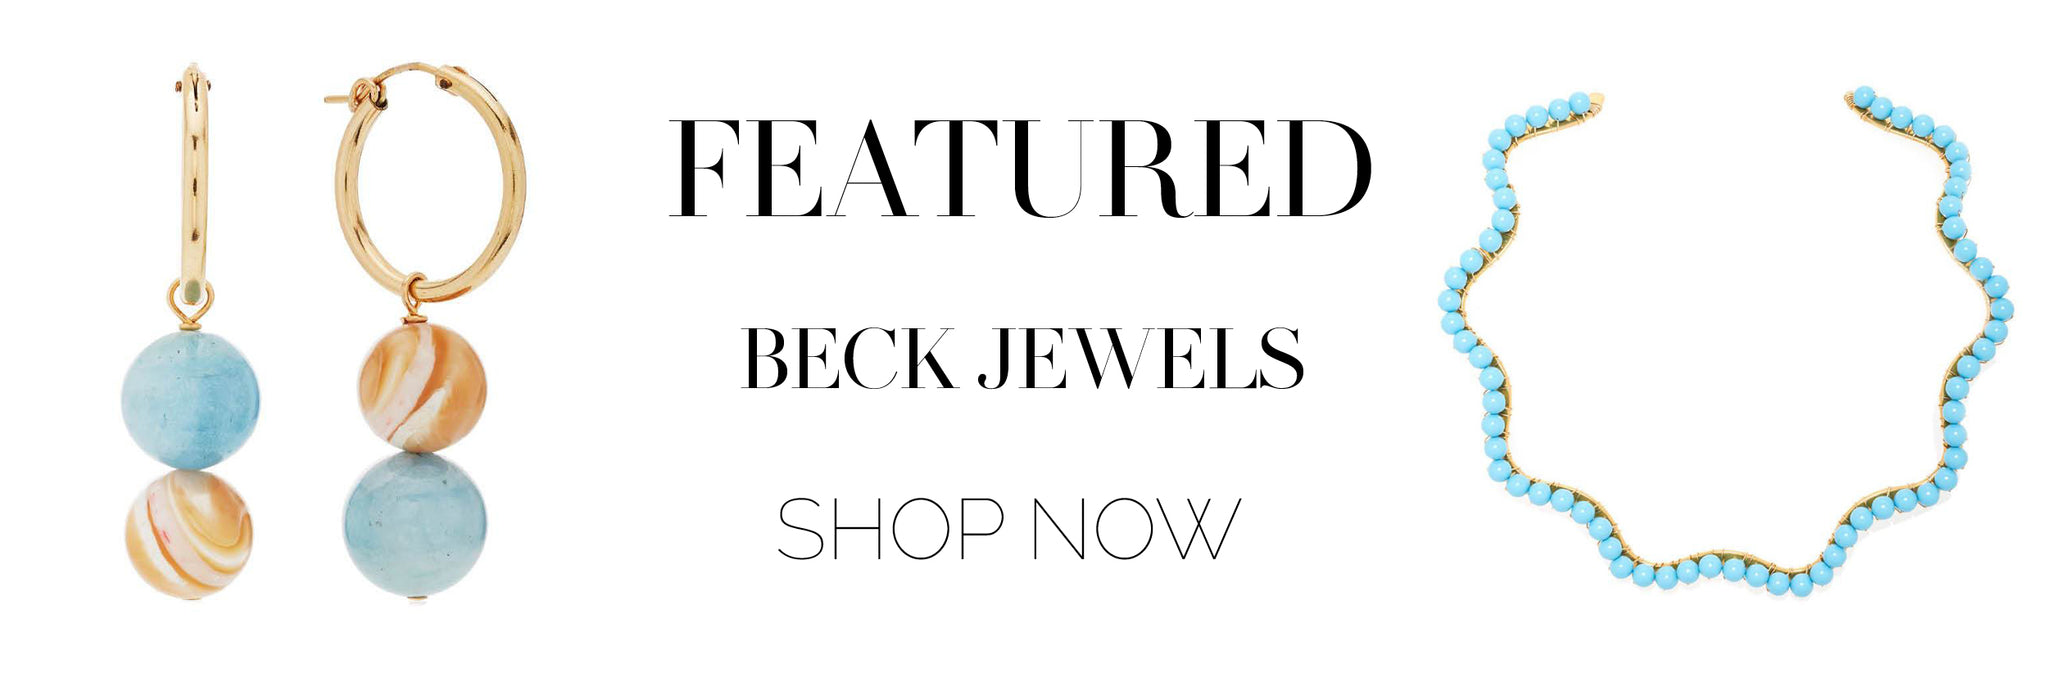 Featured: Beck Jewels Shop Now.